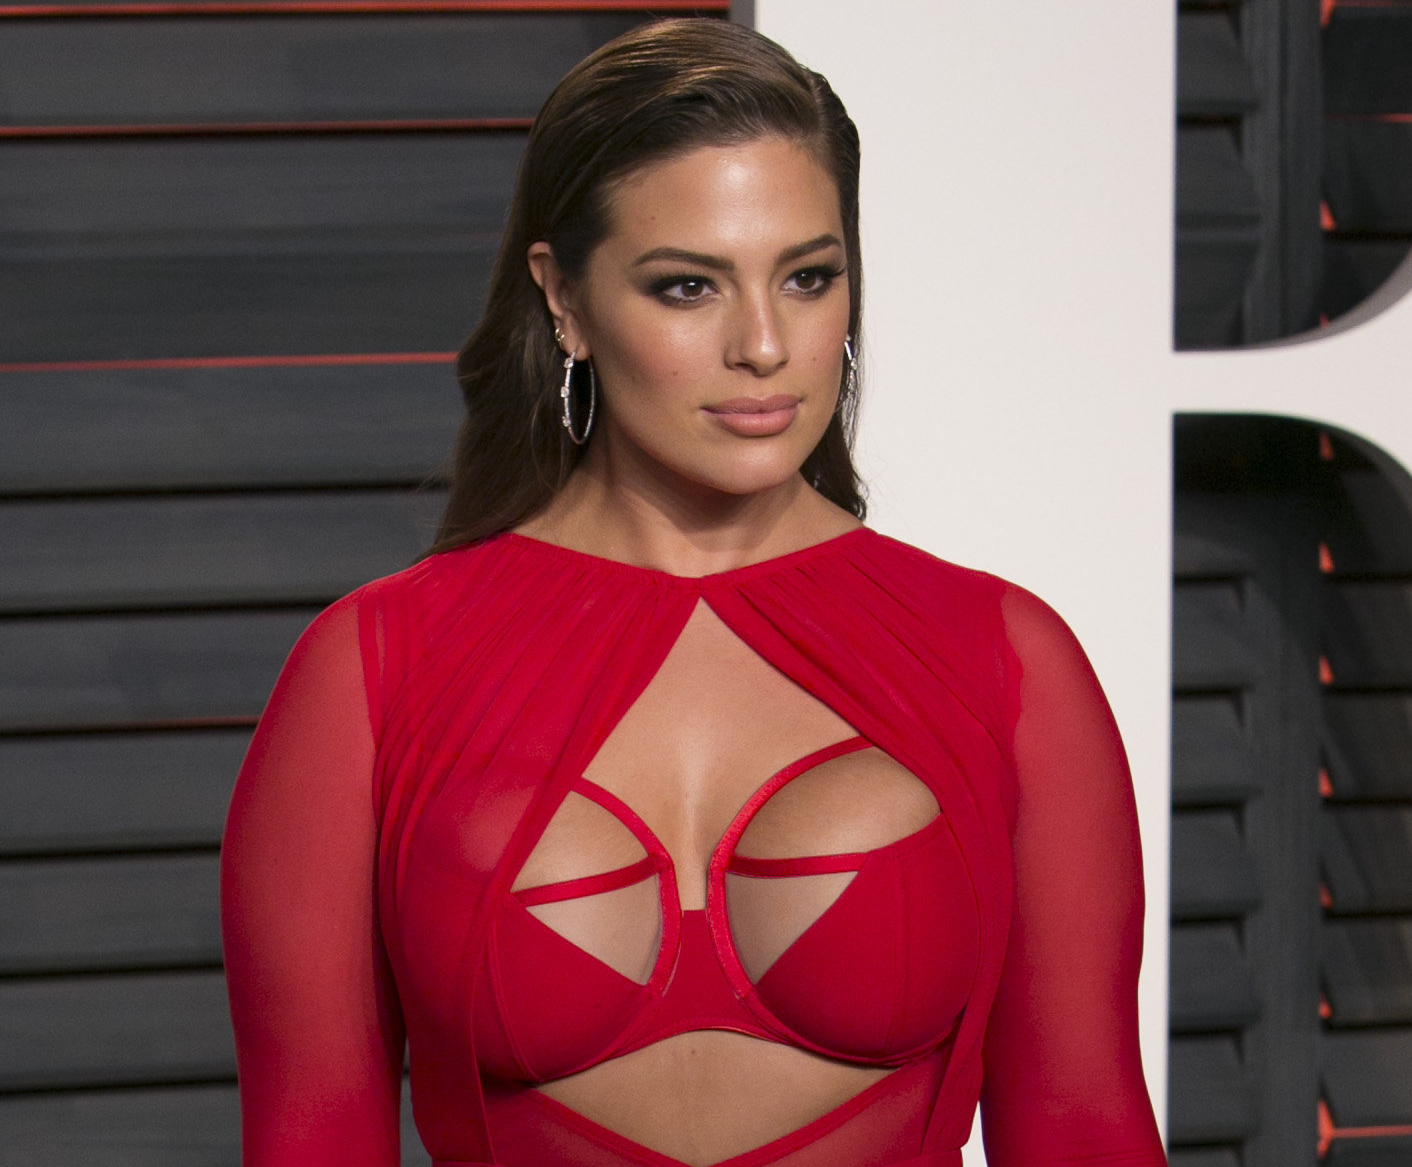 Lane Bryant is a stylish, plus size women's clothing and lingerie store designed for the curvier woman. This fashion-forward store features on-trend dresses, tops, sweaters, jeans, boots and lingerie.